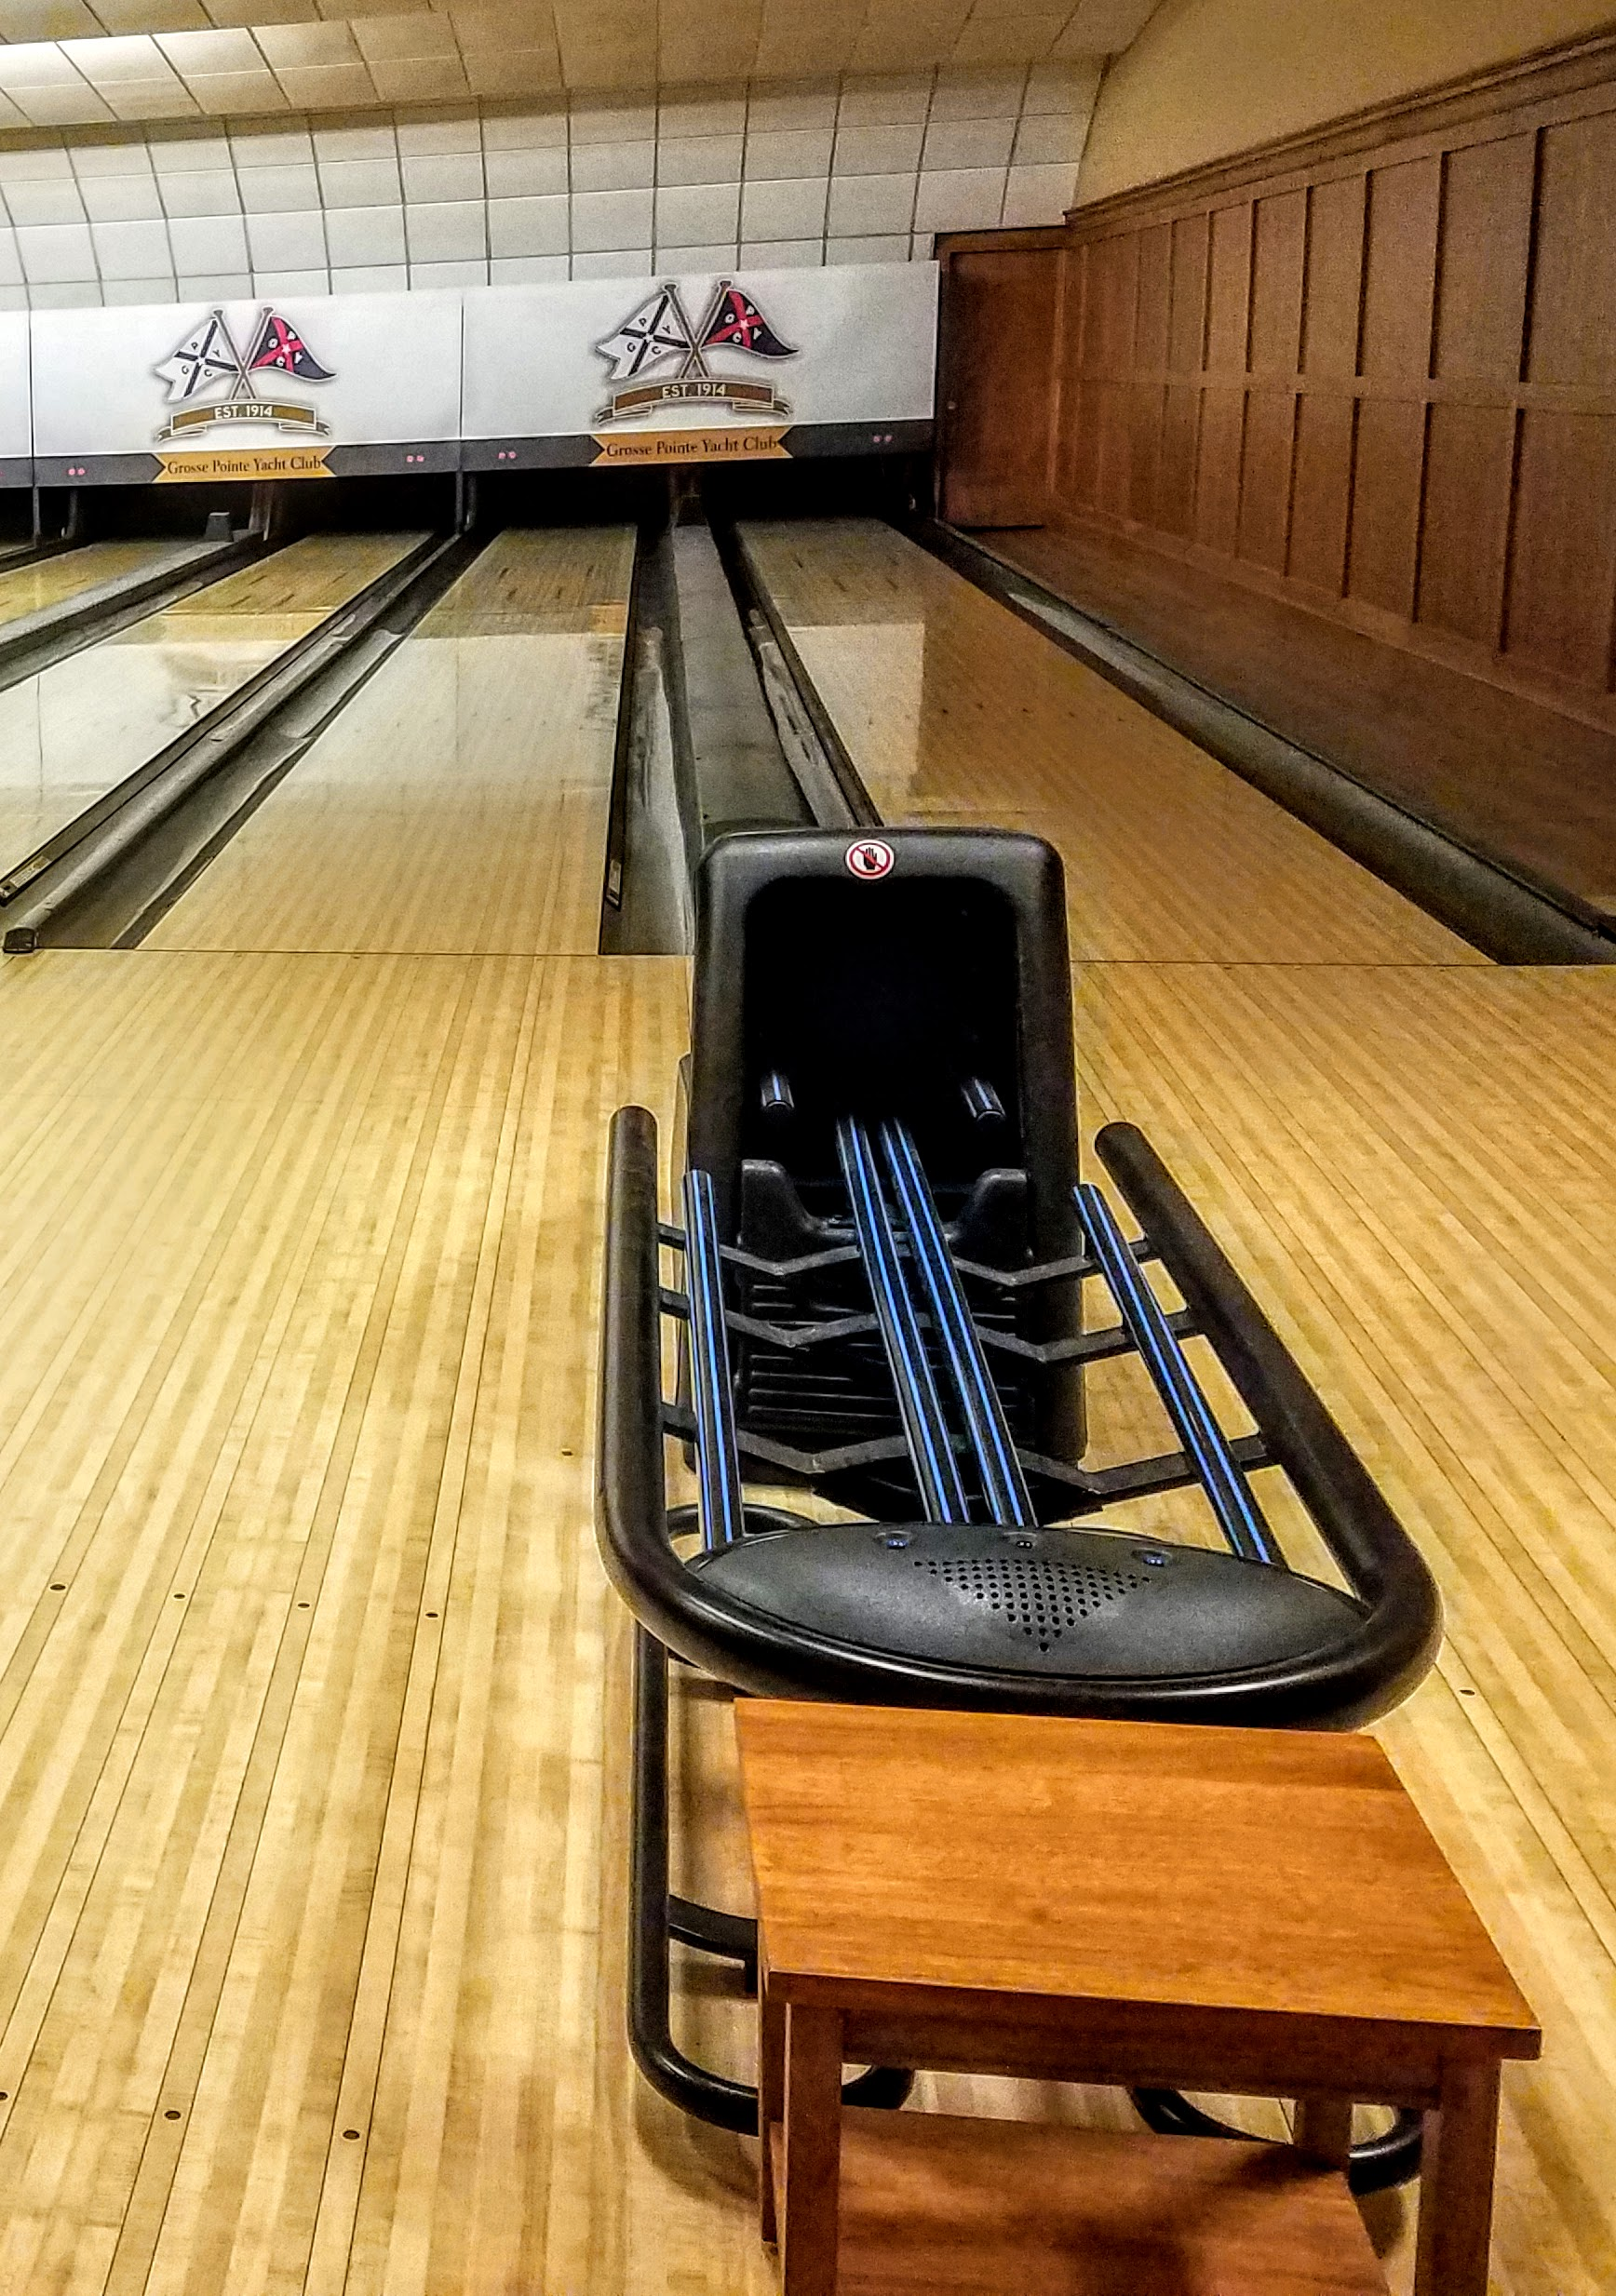 GPYC even has a bowling alley (not to mention a pool too!)